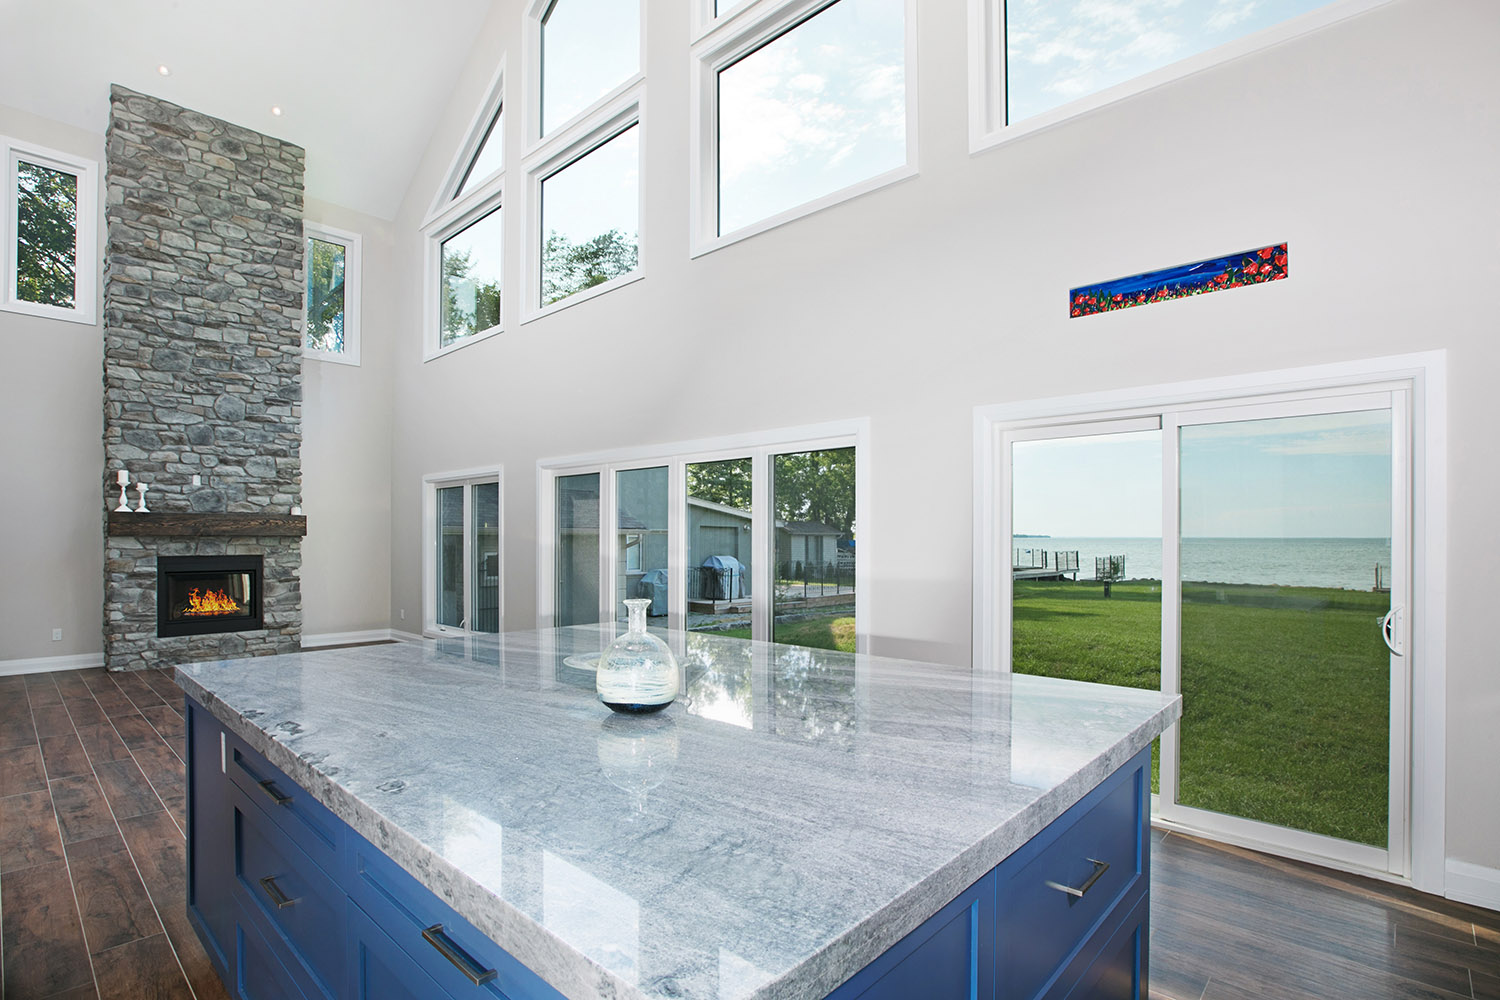 pefferlaw_lakefront_two_story_custom_home--construct_conserve_21.jpg